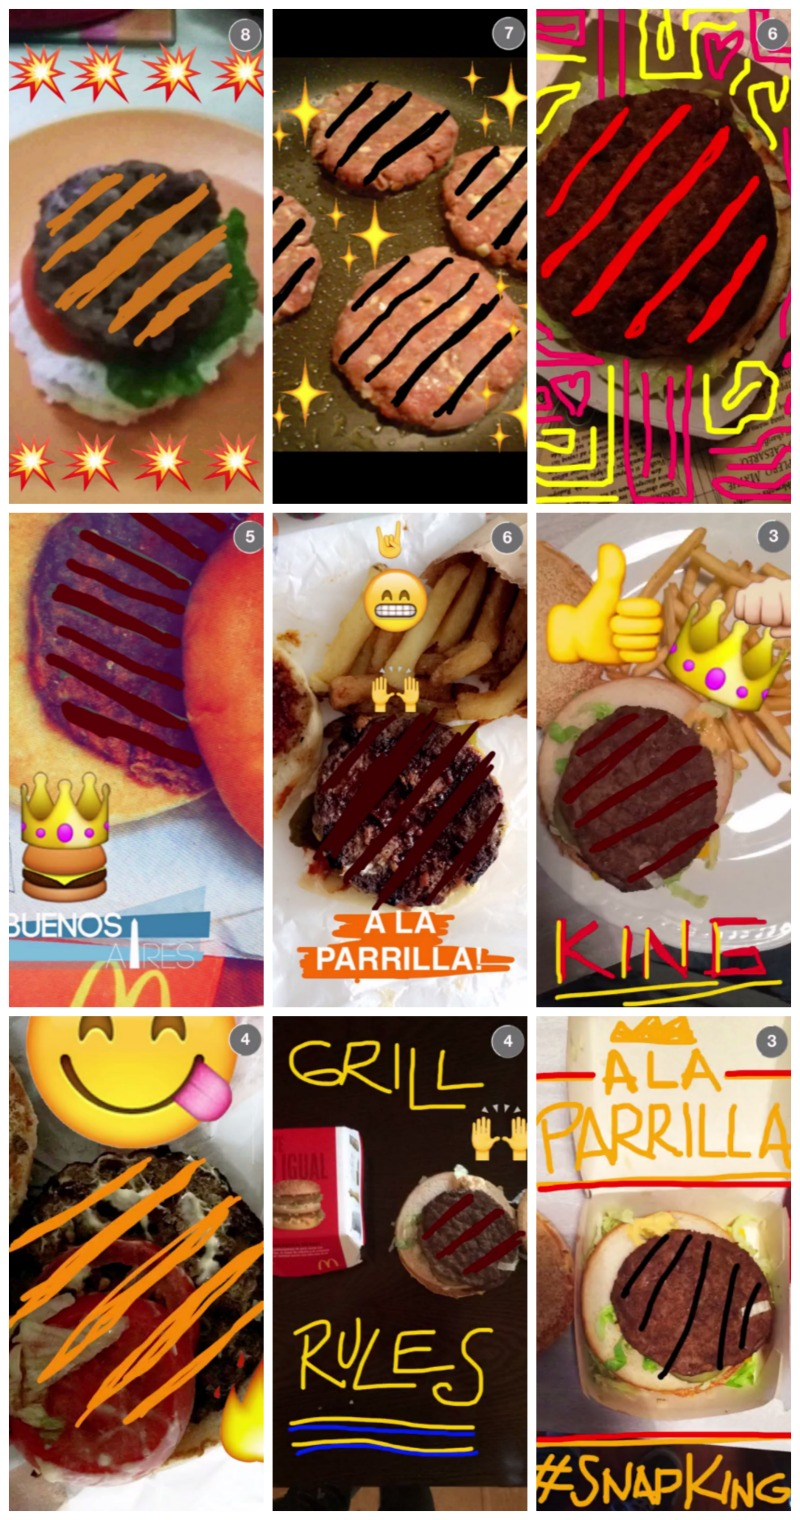 image-snapchat-screenshot-burger-king-se-moque-des-burgers-de-ses-concurrents-sur-Snapchat